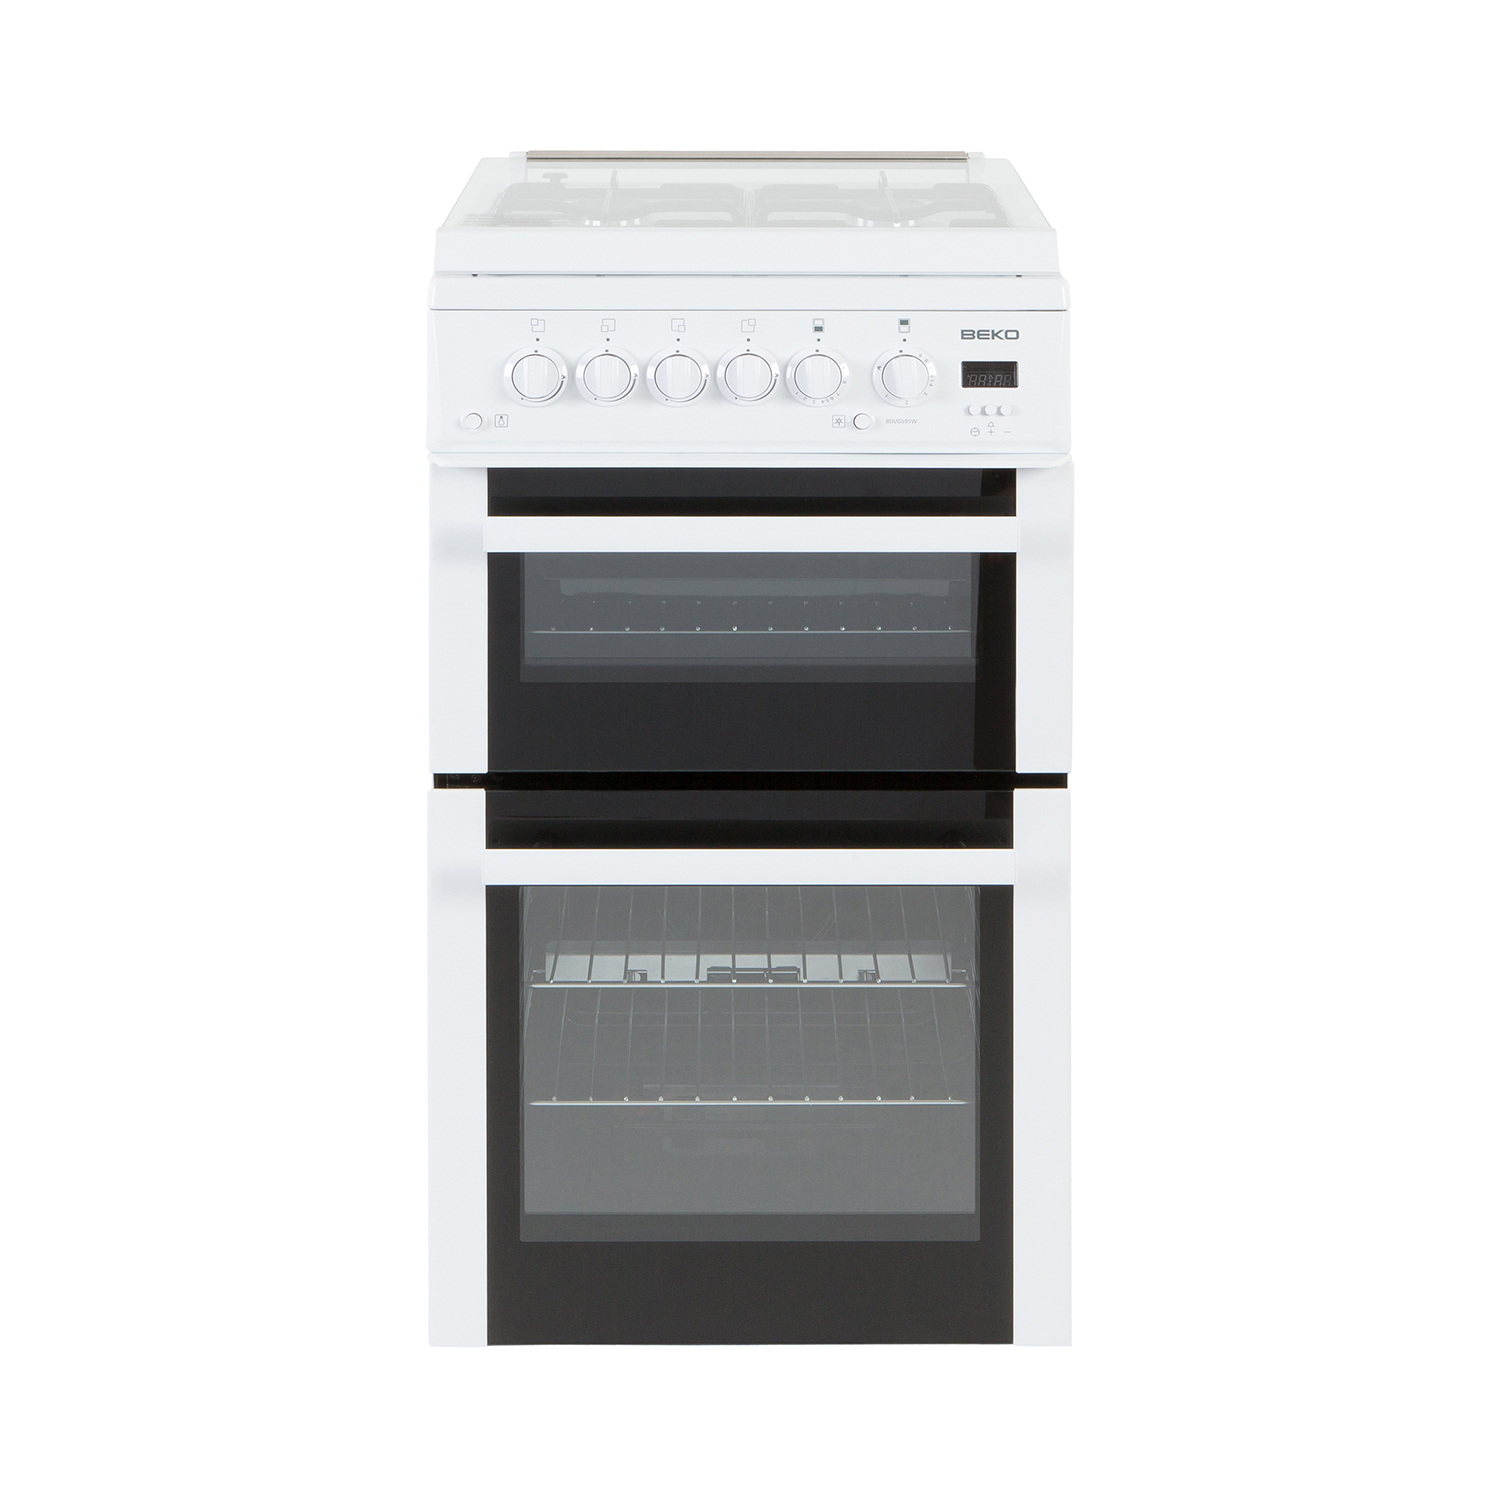 Beko BDVG595W White 50cm Double Oven Gas Cooker THT Direct